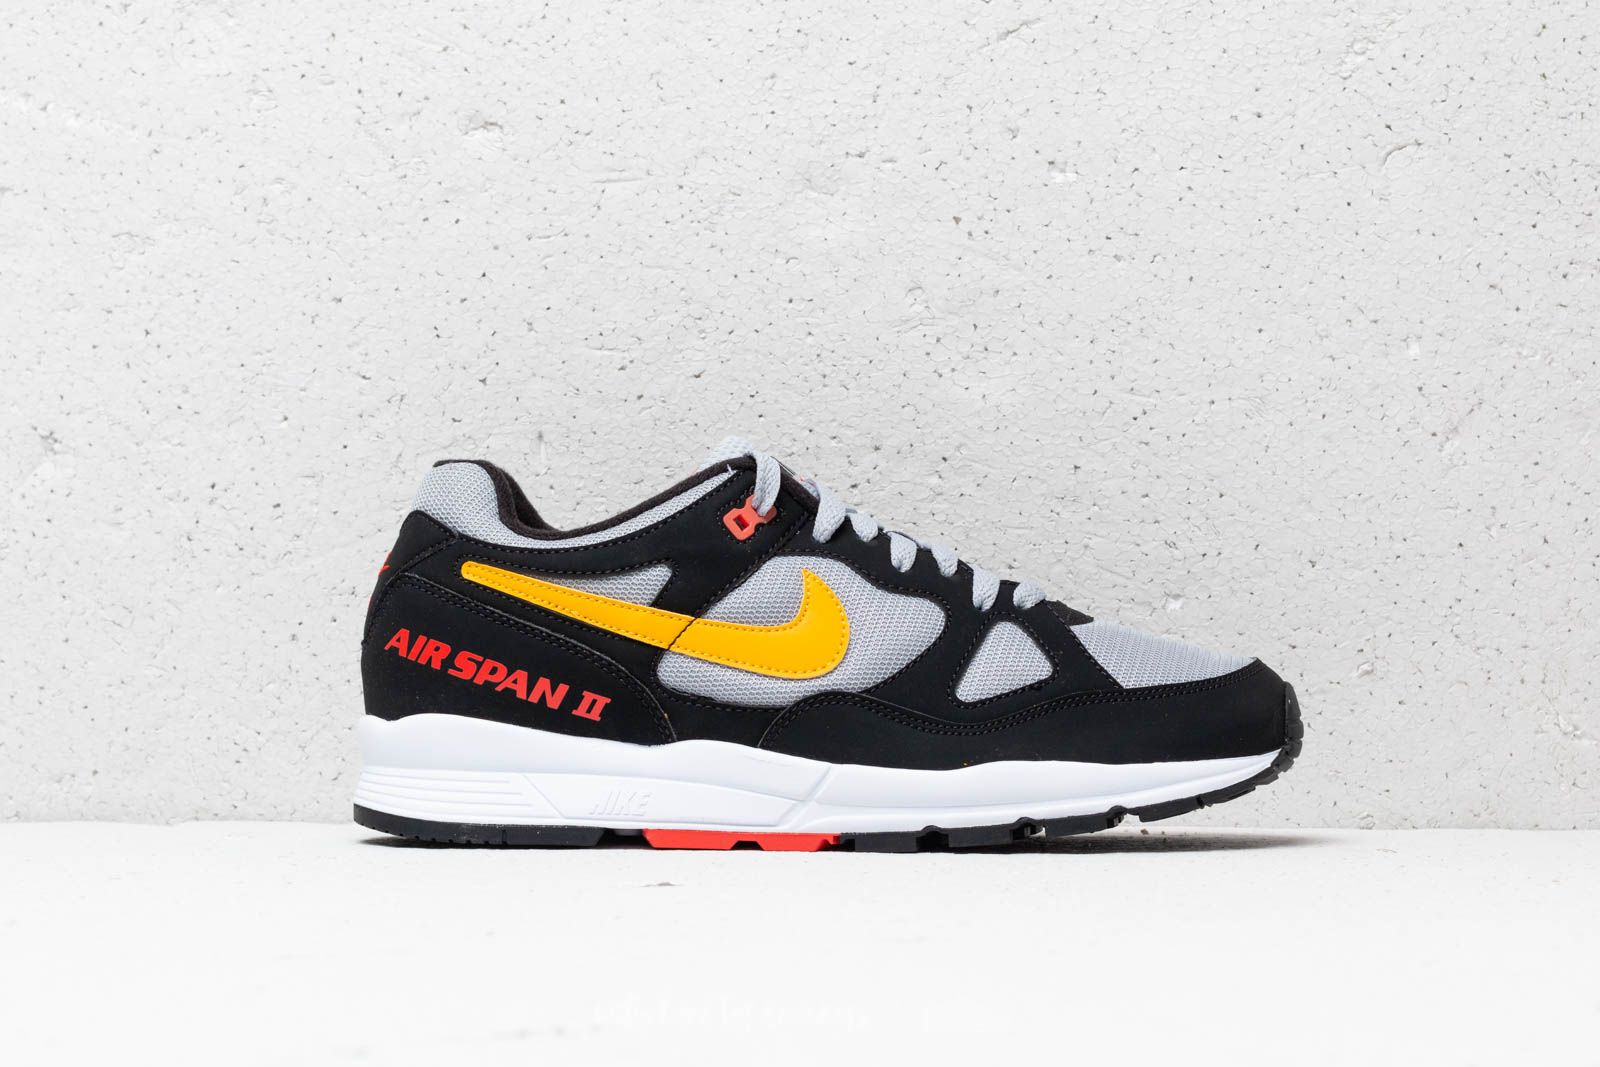 fc8702880c1c Nike Air Span II Black  Yellow Orche-Wolf Grey at a great price 99